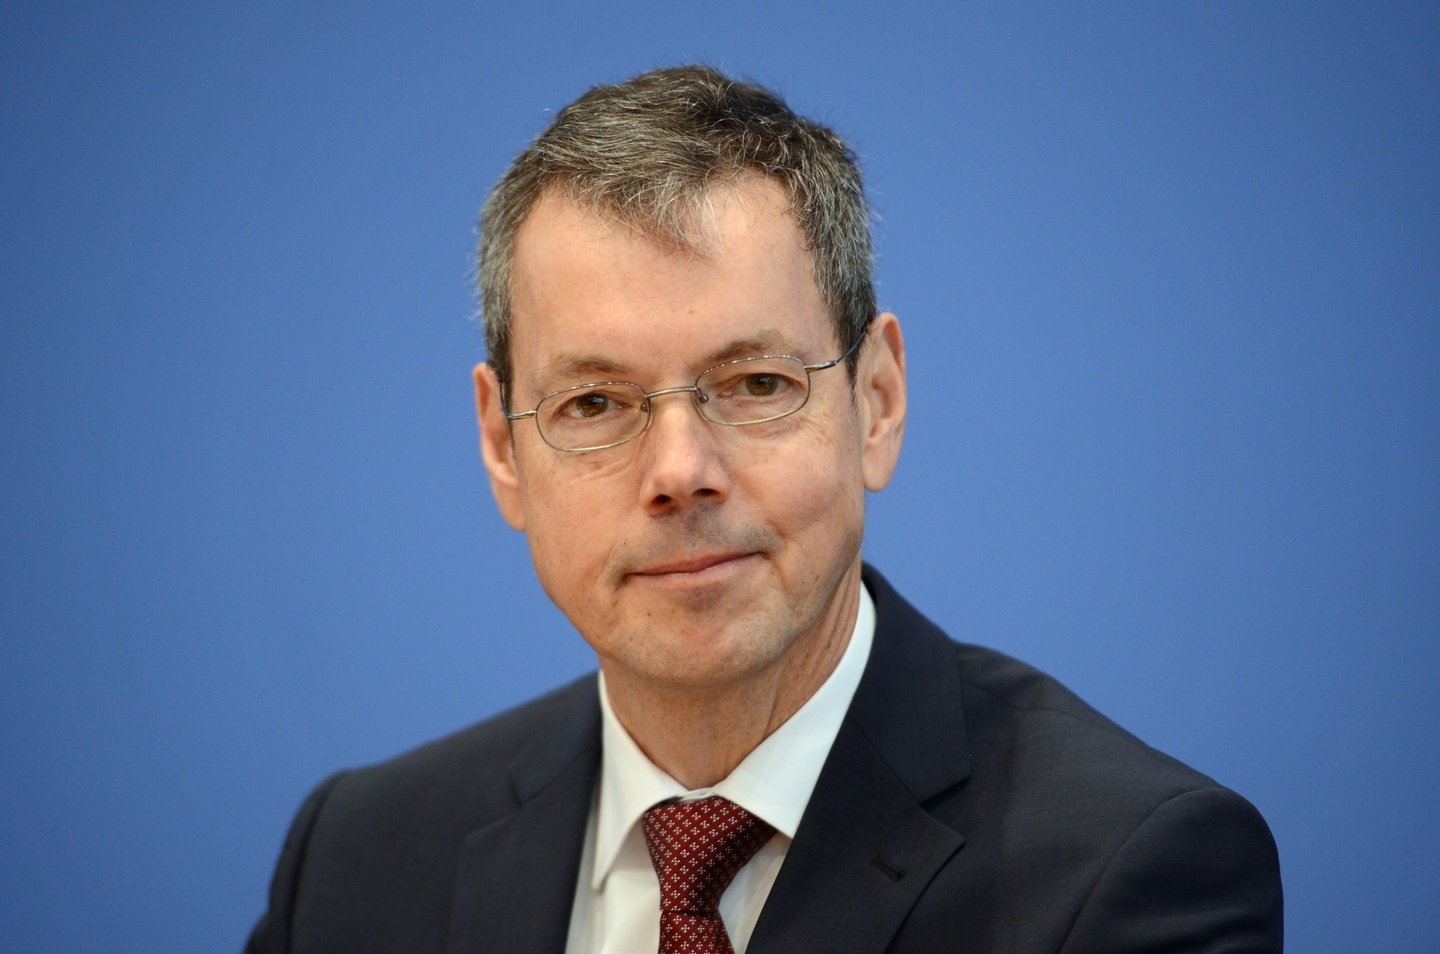 German economist Peter Bofinger attends a press conference after the presentation of the annual report on the economic development in Germany released by Germany's so-called five wise men or panel of independent economic advisors, at the chancellery in Berlin on November 7, 2012. AFP PHOTO / JOHANNES EISELE (Photo credit should read JOHANNES EISELE/AFP/Getty Images)